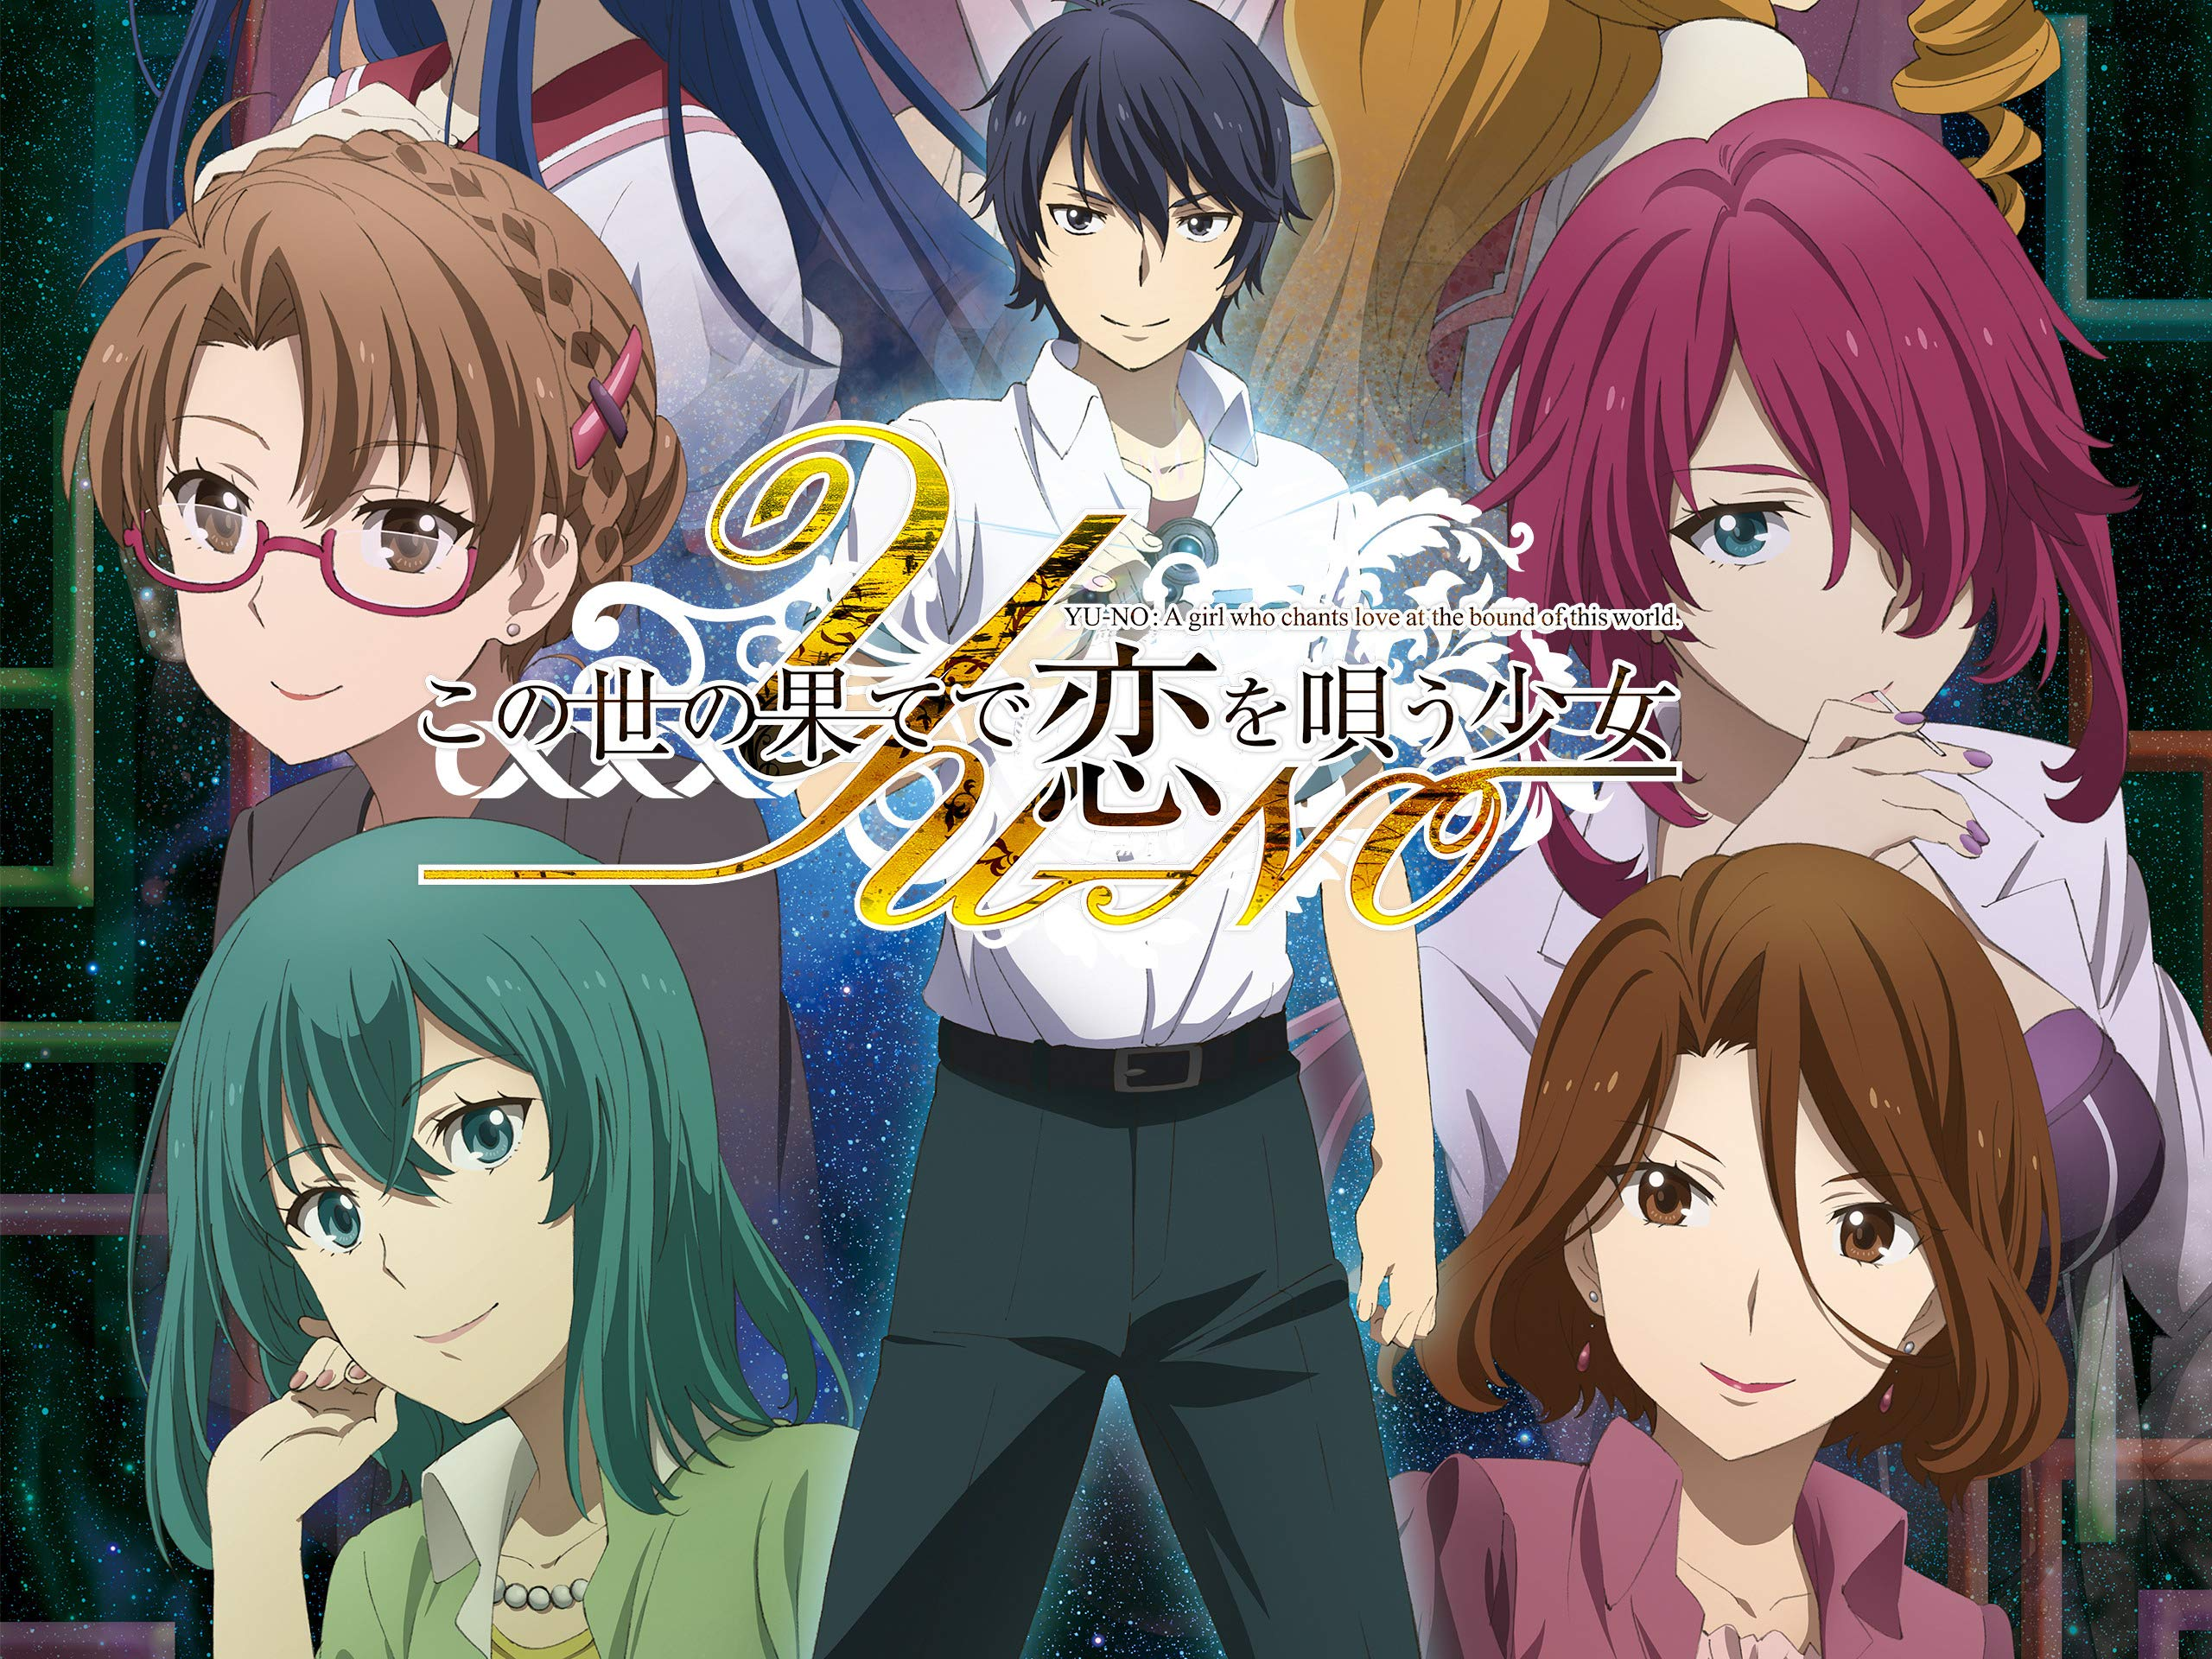 Watch YU-NO: A Girl Who Chants Love at the Bound of This World, Pt